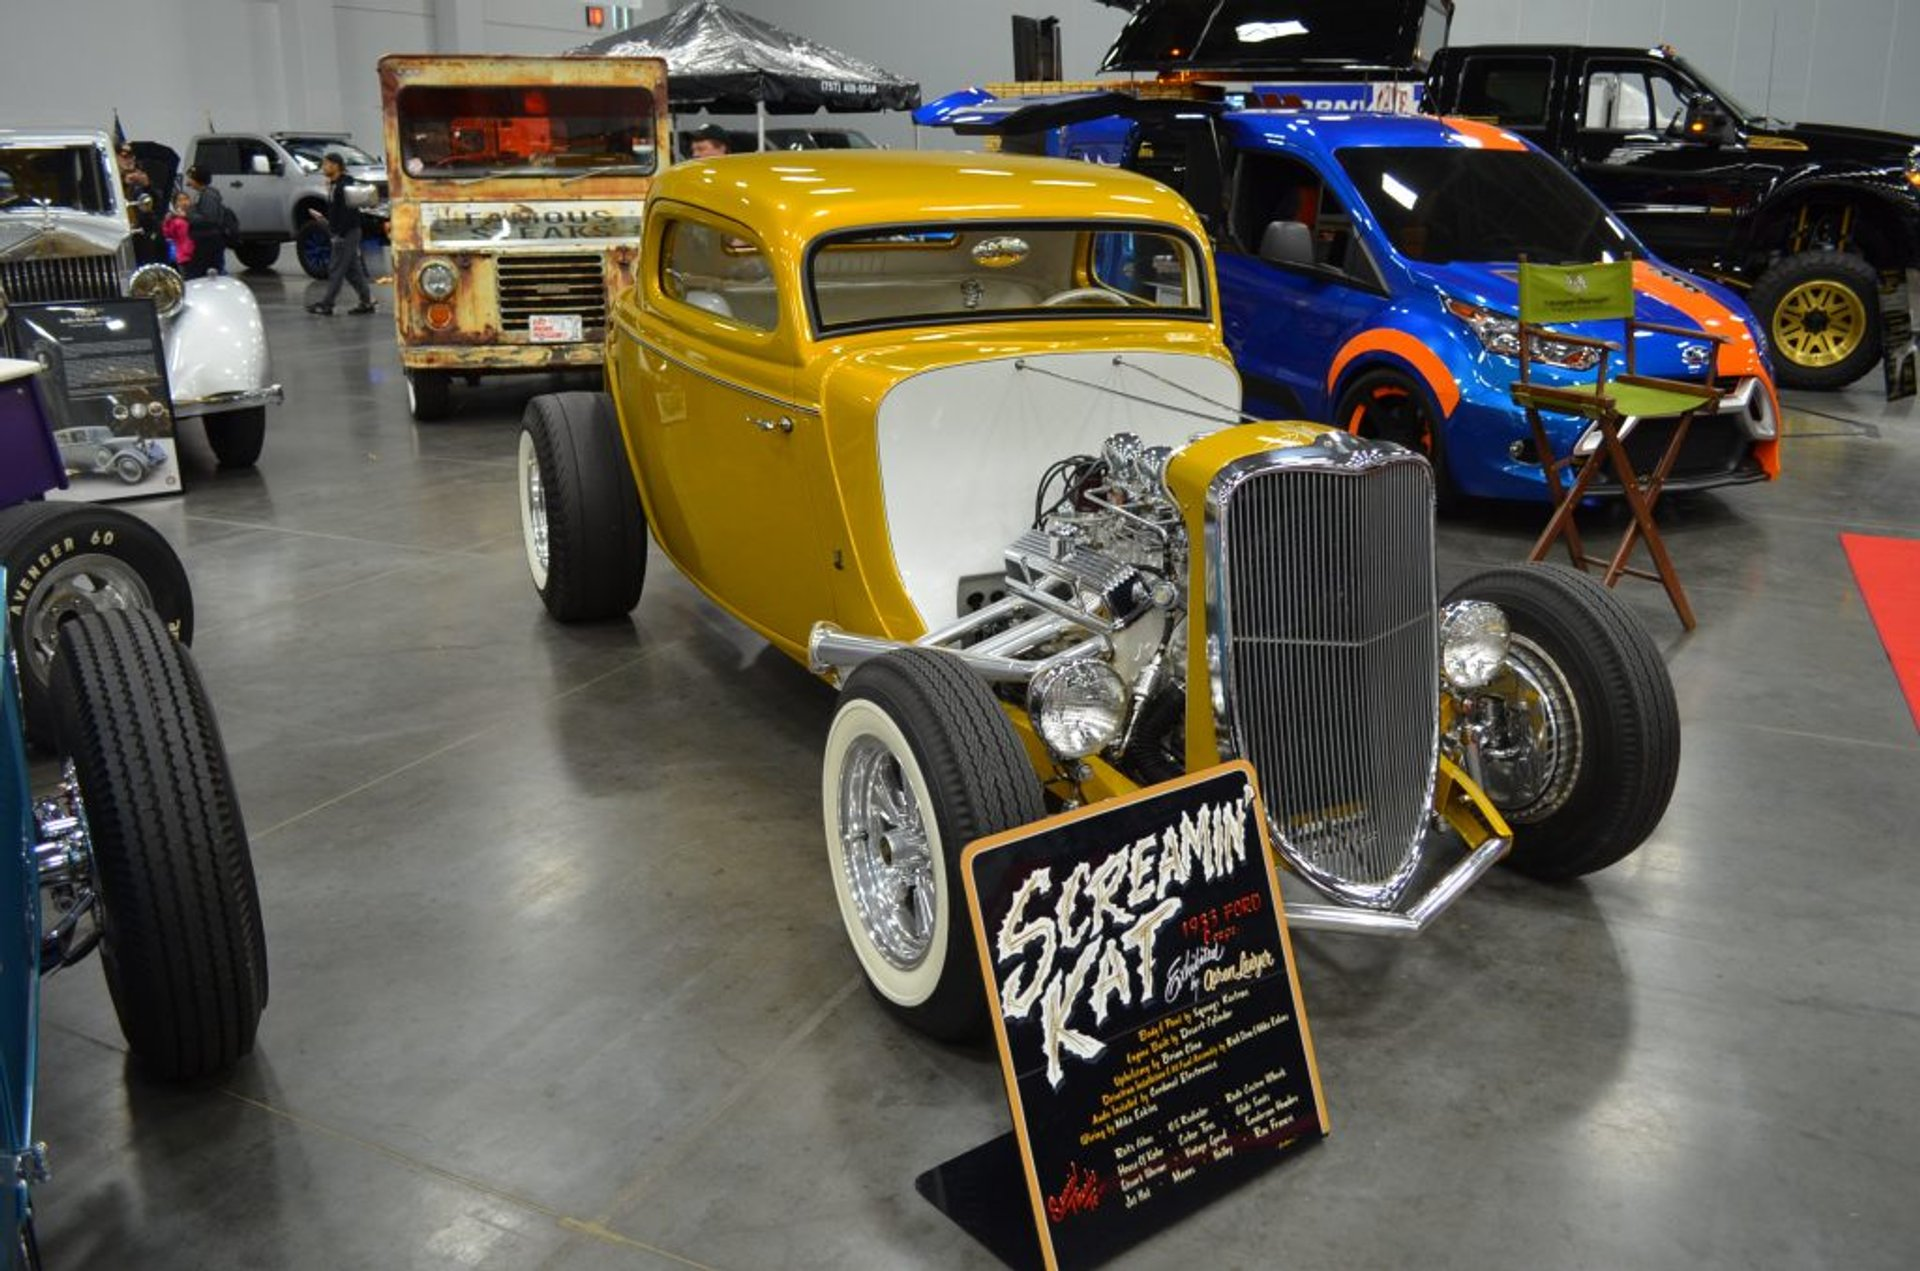 Coastal Virginia Auto Show in Virginia - Best Season 2020